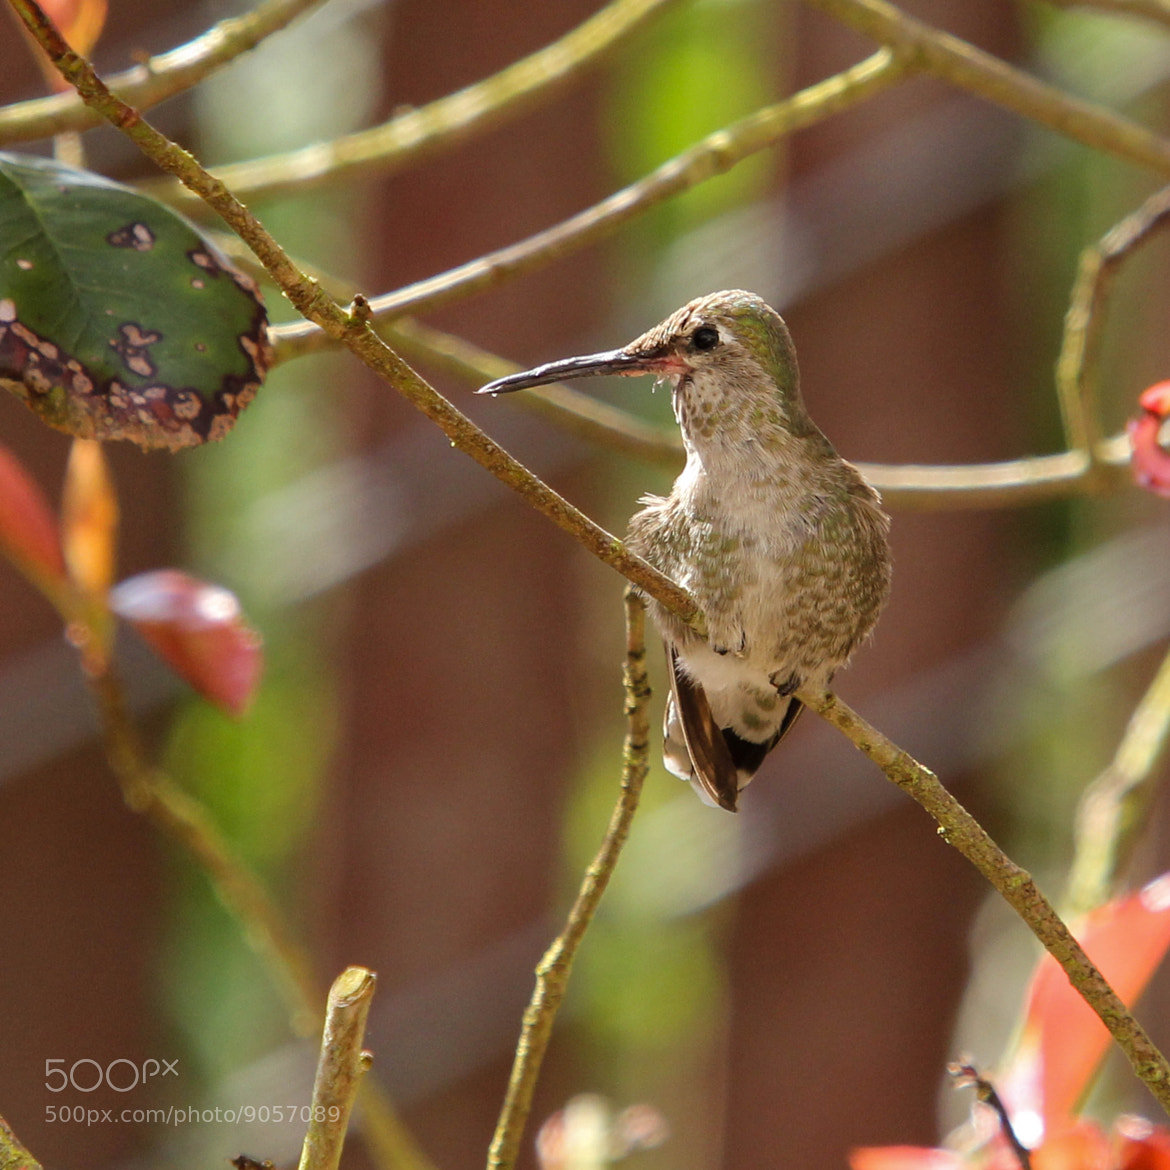 Photograph Humming bird by Vinnie Halpin on 500px